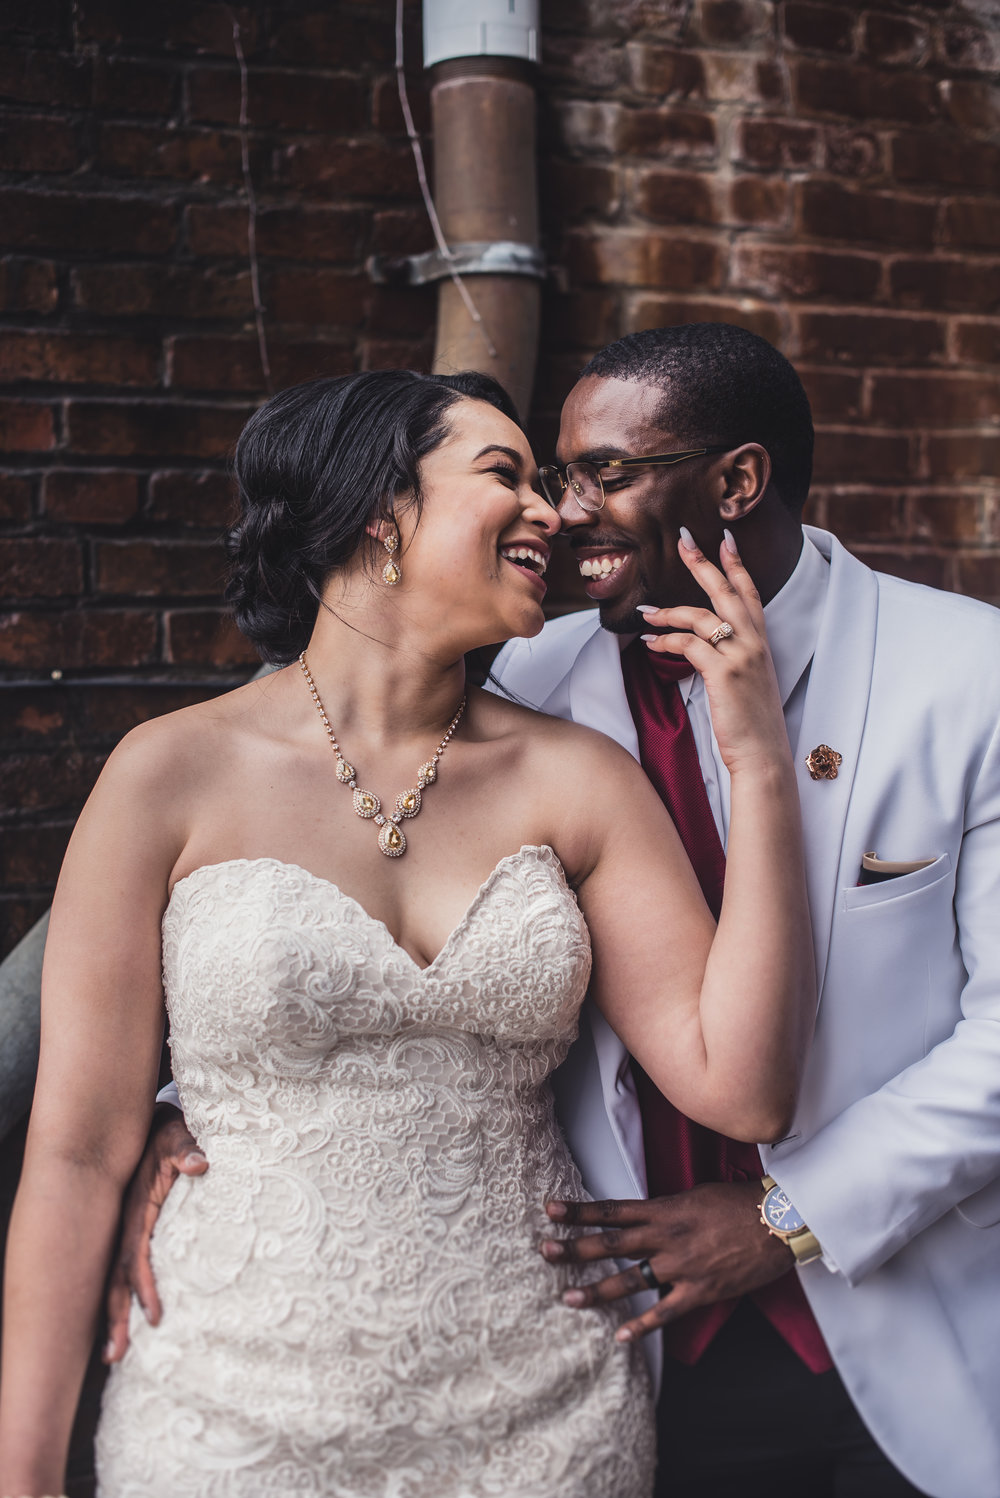 Burlington Iowa Wedding Midwest Photographer Melissa Cervantes _ Chantelle and Isaiah 610b.jpg